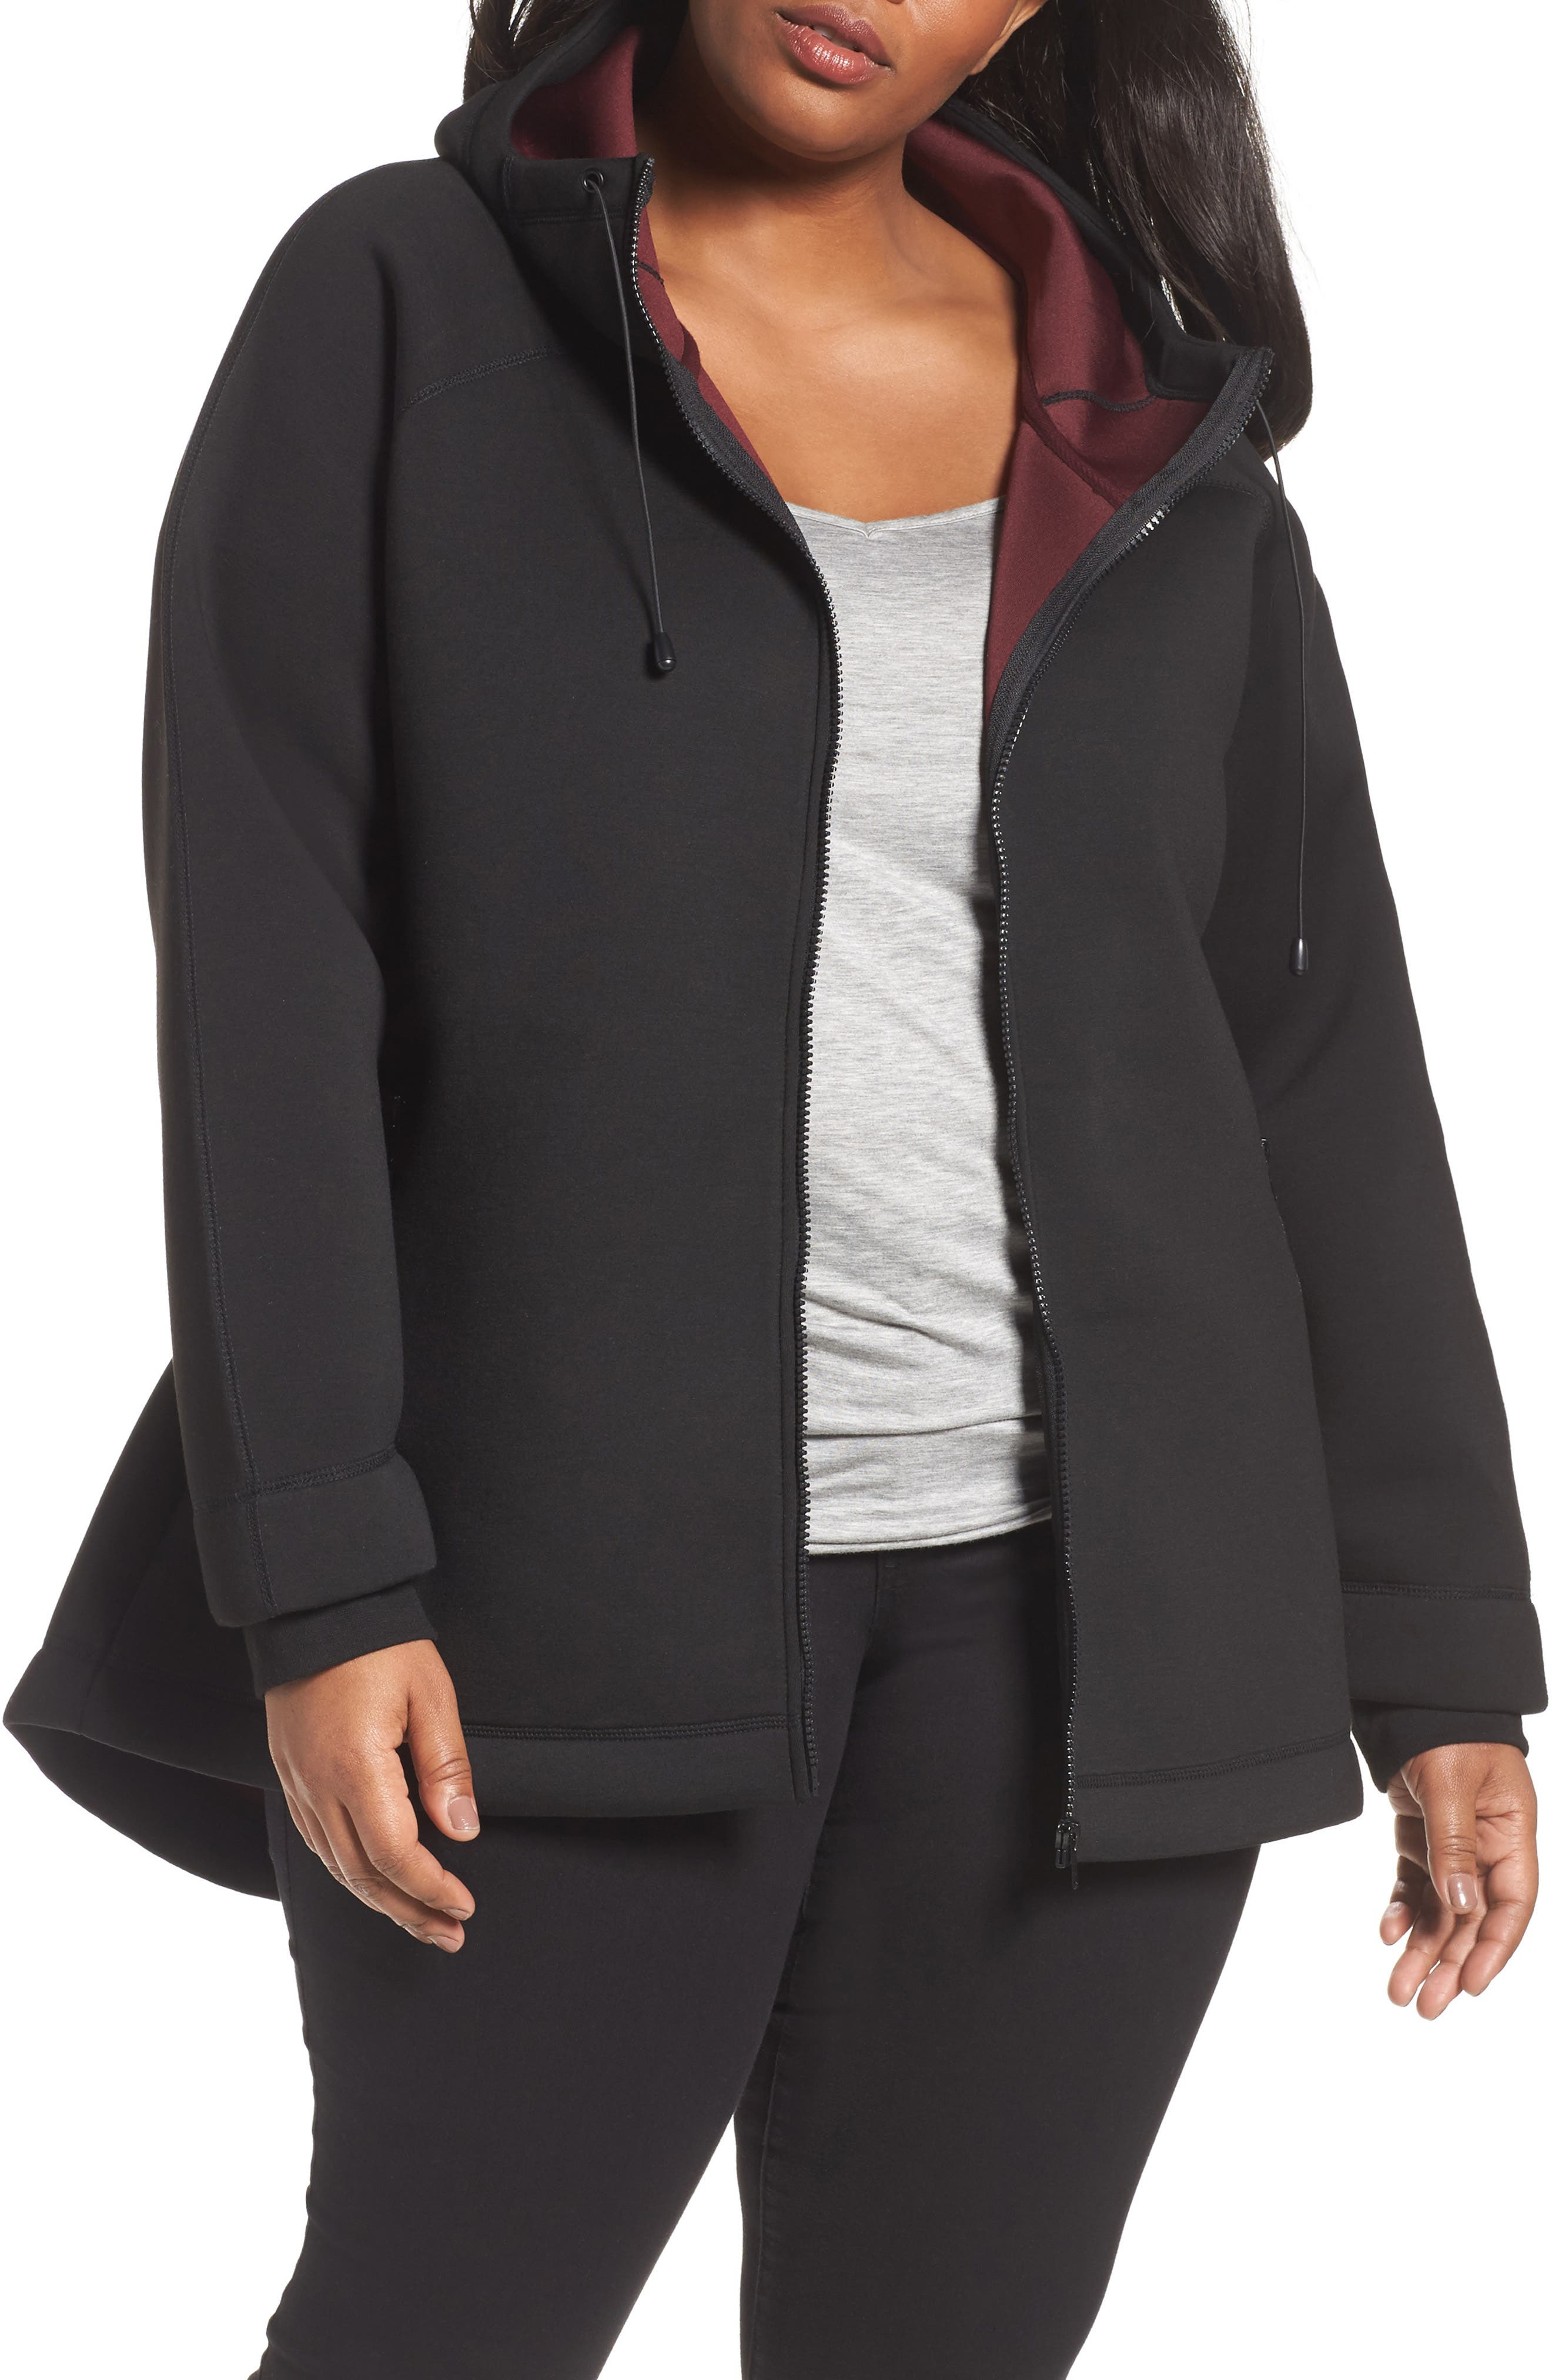 Mono Knit Drawstring Hooded Jacket,                             Main thumbnail 1, color,                             Black/ Burgundy